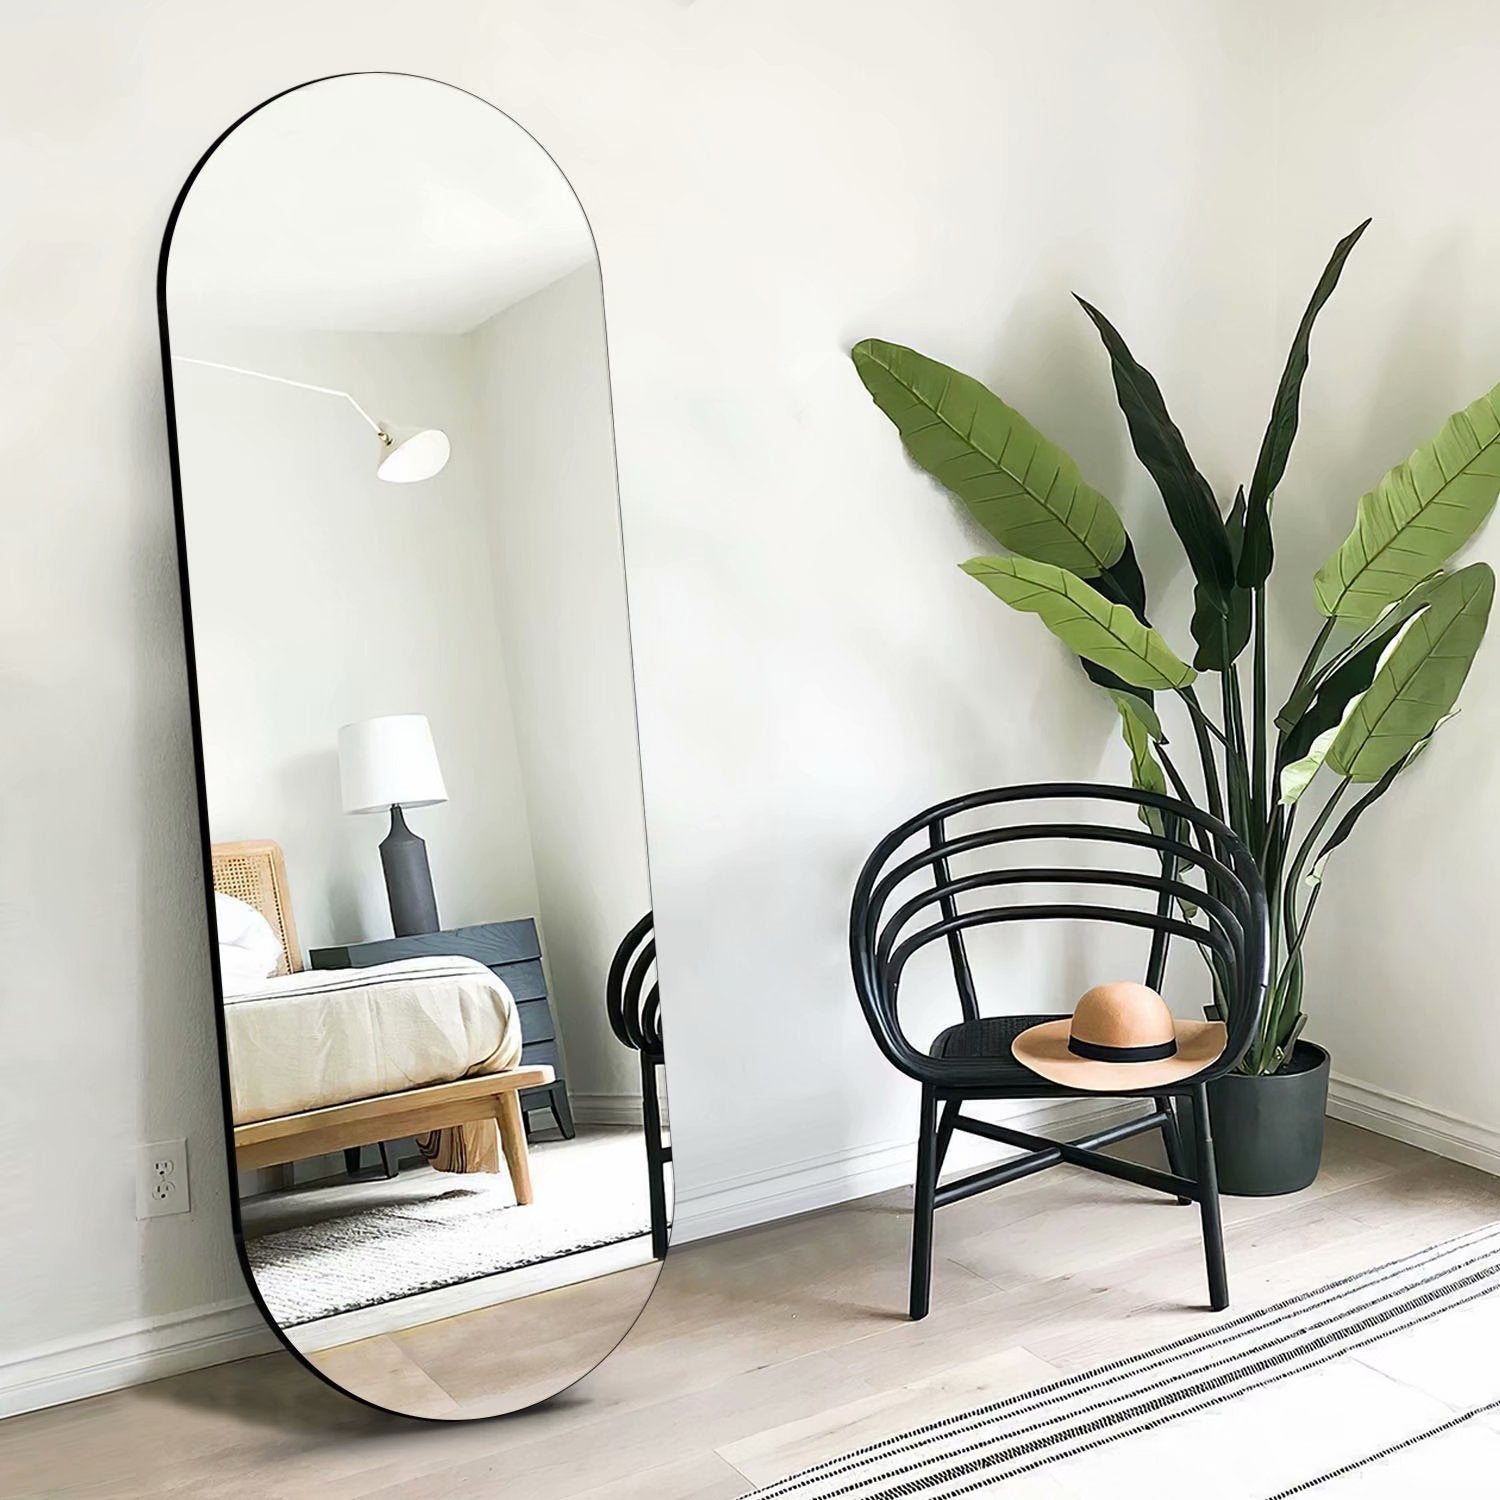 64 X21 Modern Ins Style Full Length Arch Mirror Floor Mirror Overstock 32321778 64x21 Gold